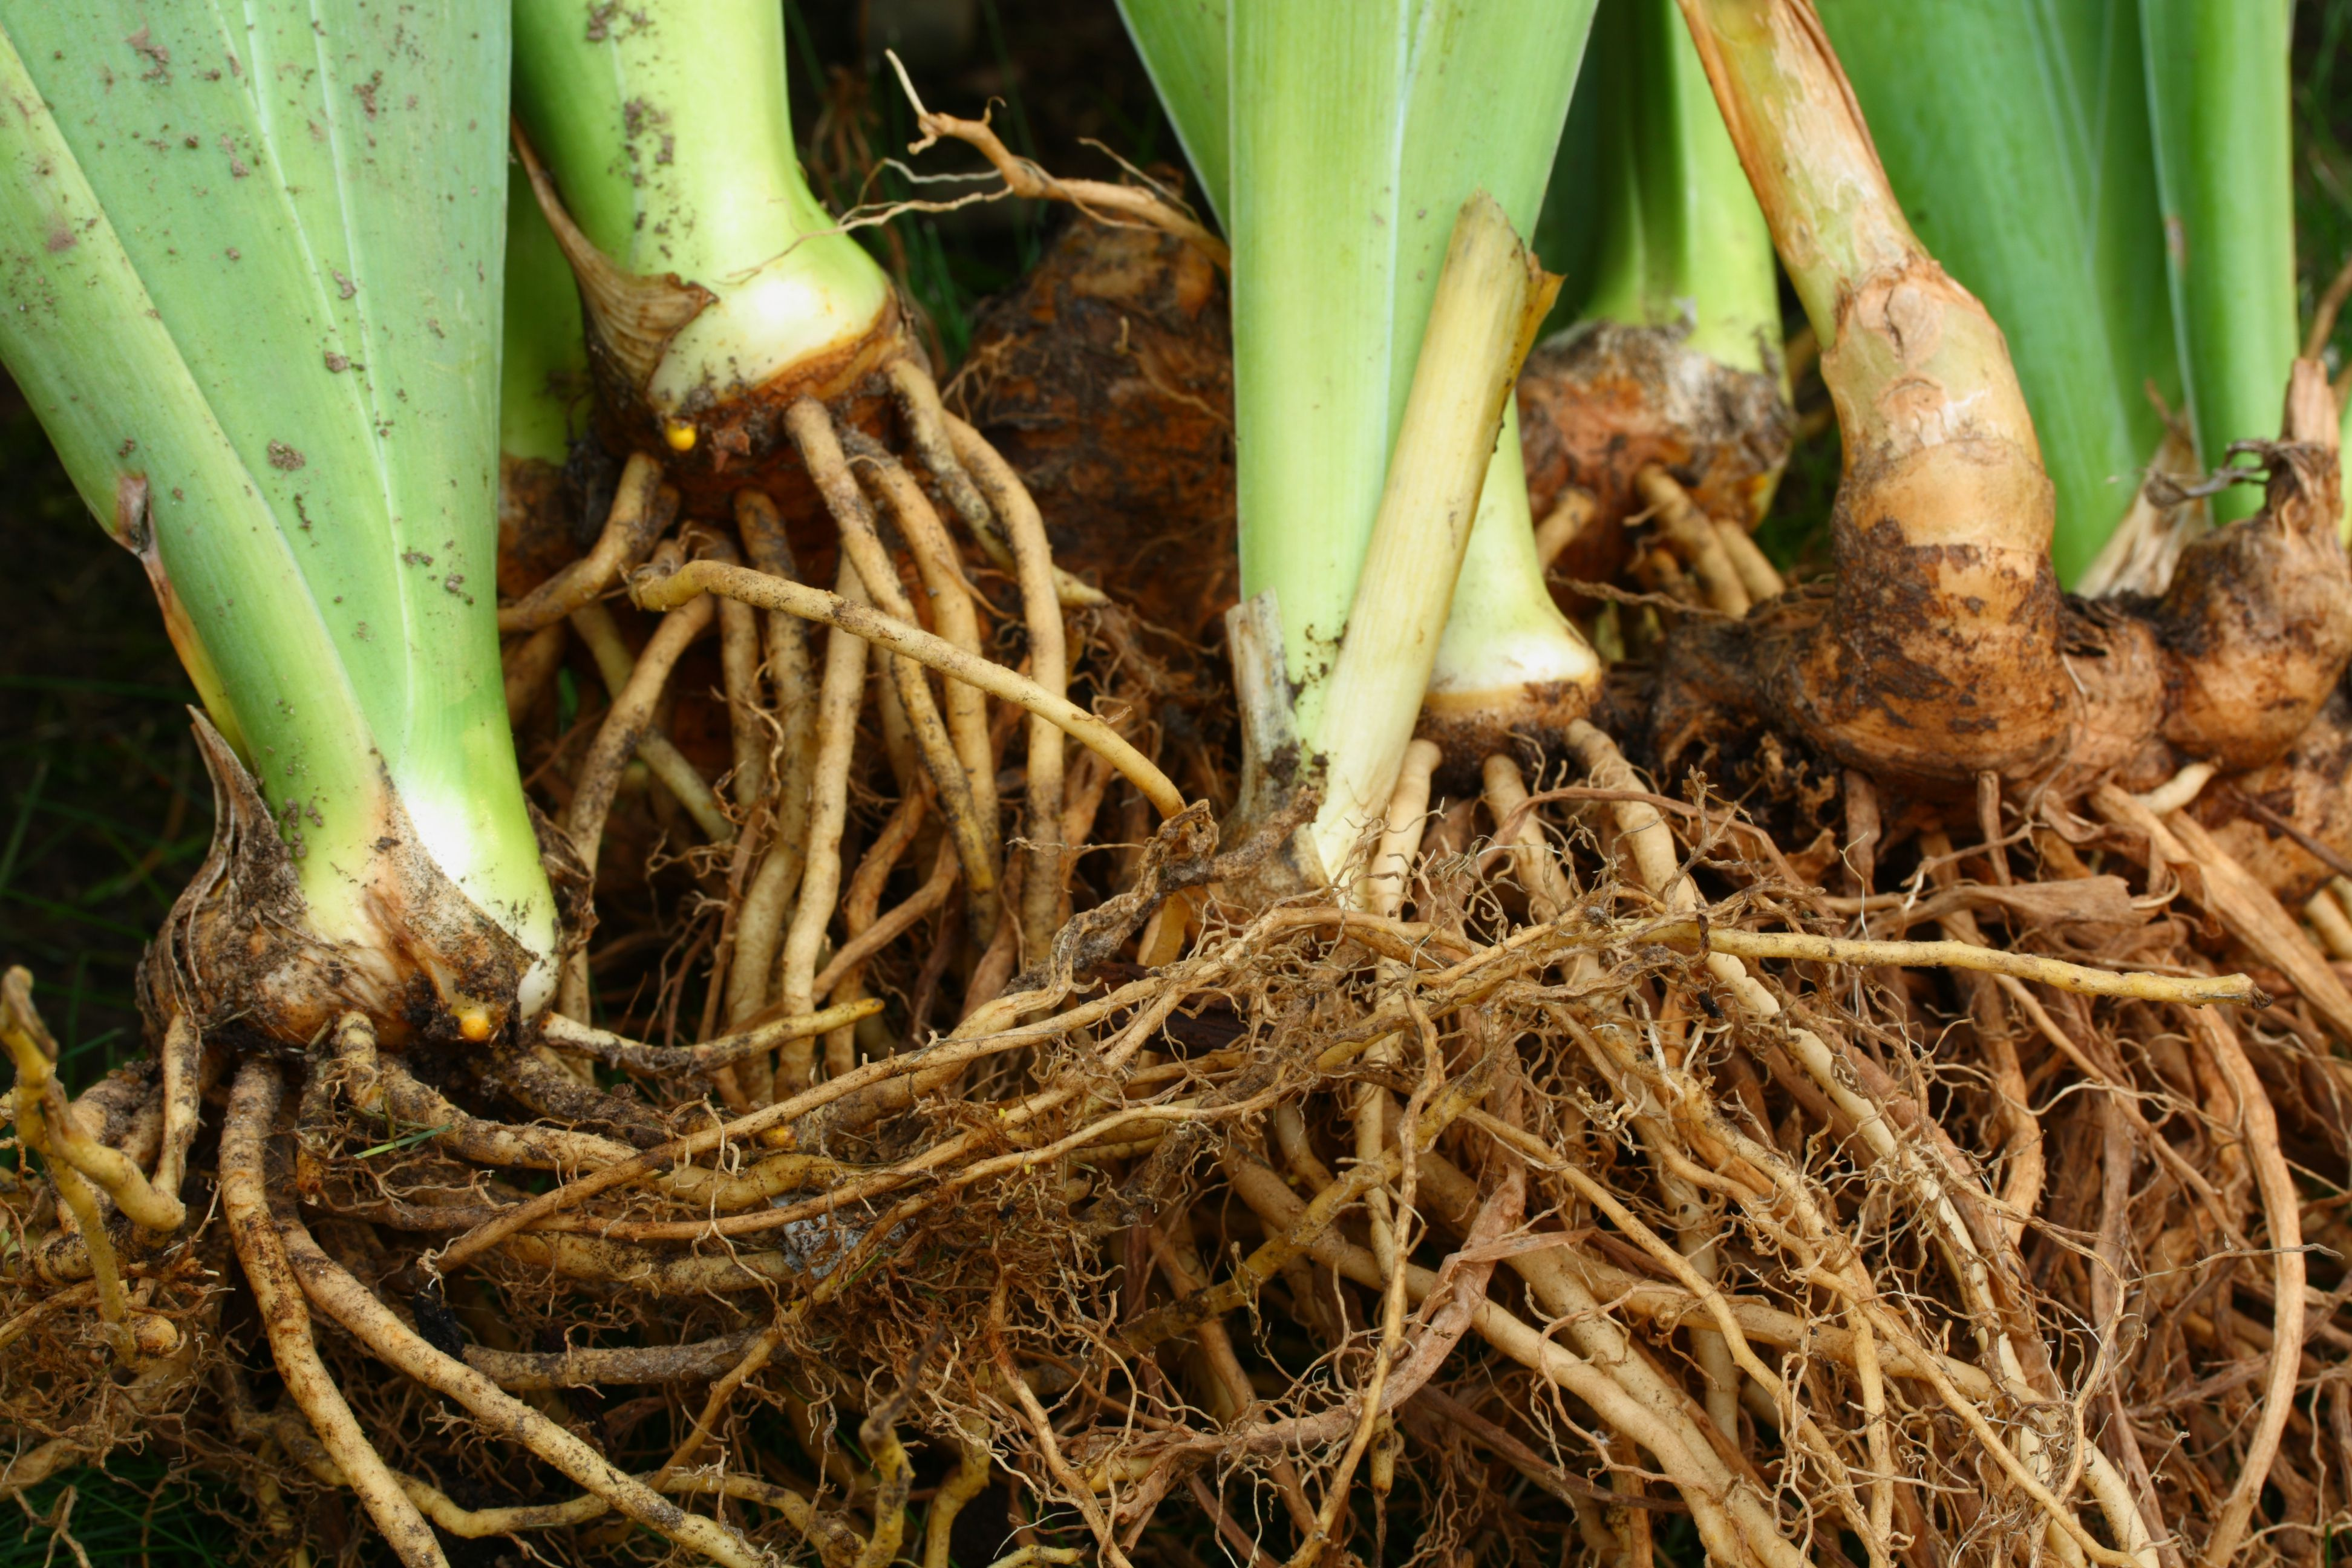 Iris Roots, Stems, and Leaves